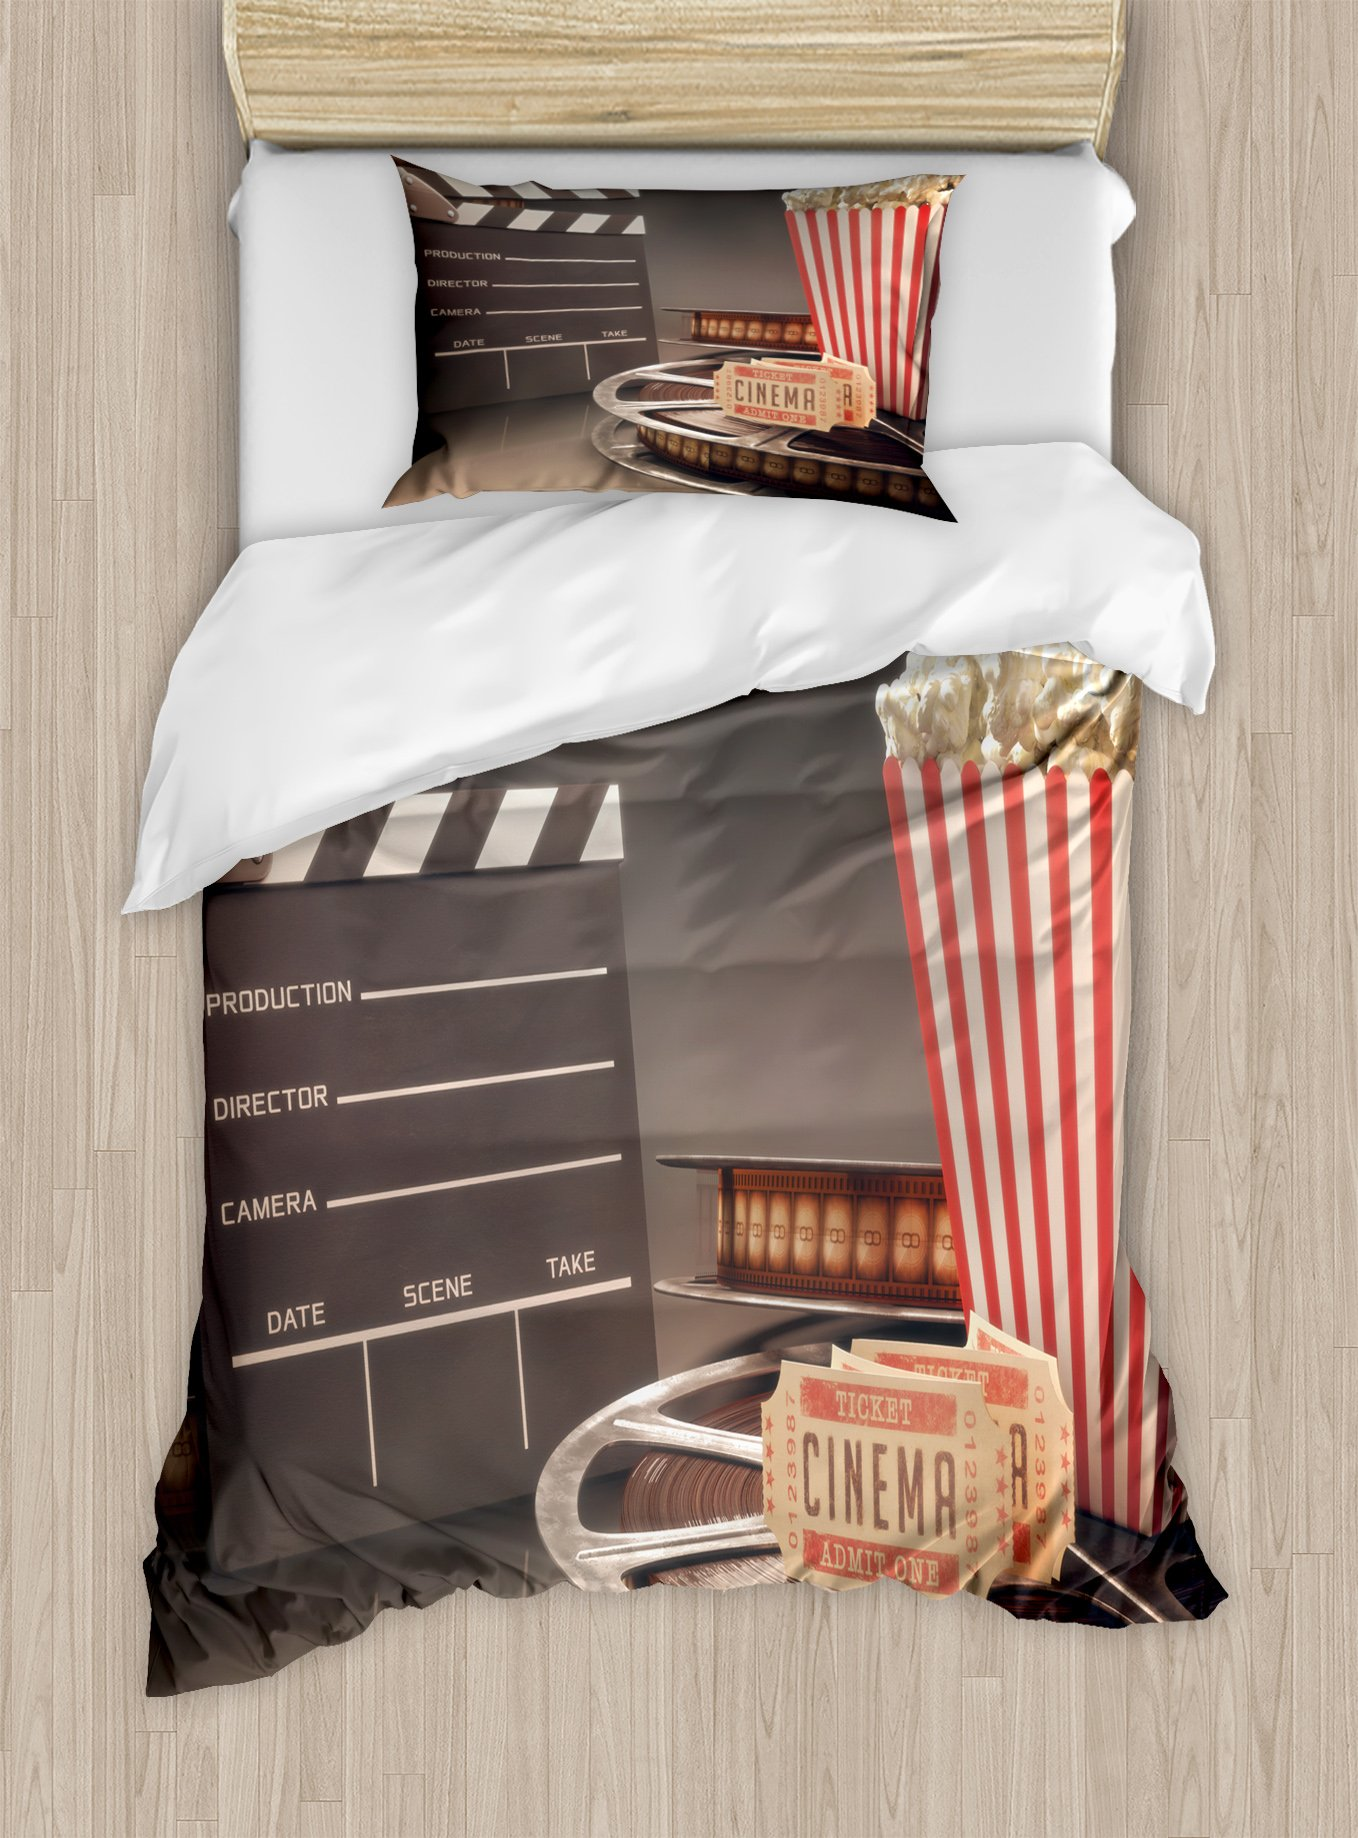 Ambesonne Movie Theater Twin Size Duvet Cover Set, Old Fashion Entertainment Objects Related to Cinema Film Reel Motion Picture, Decorative 2 Piece Bedding Set with 1 Pillow Sham, Multicolor